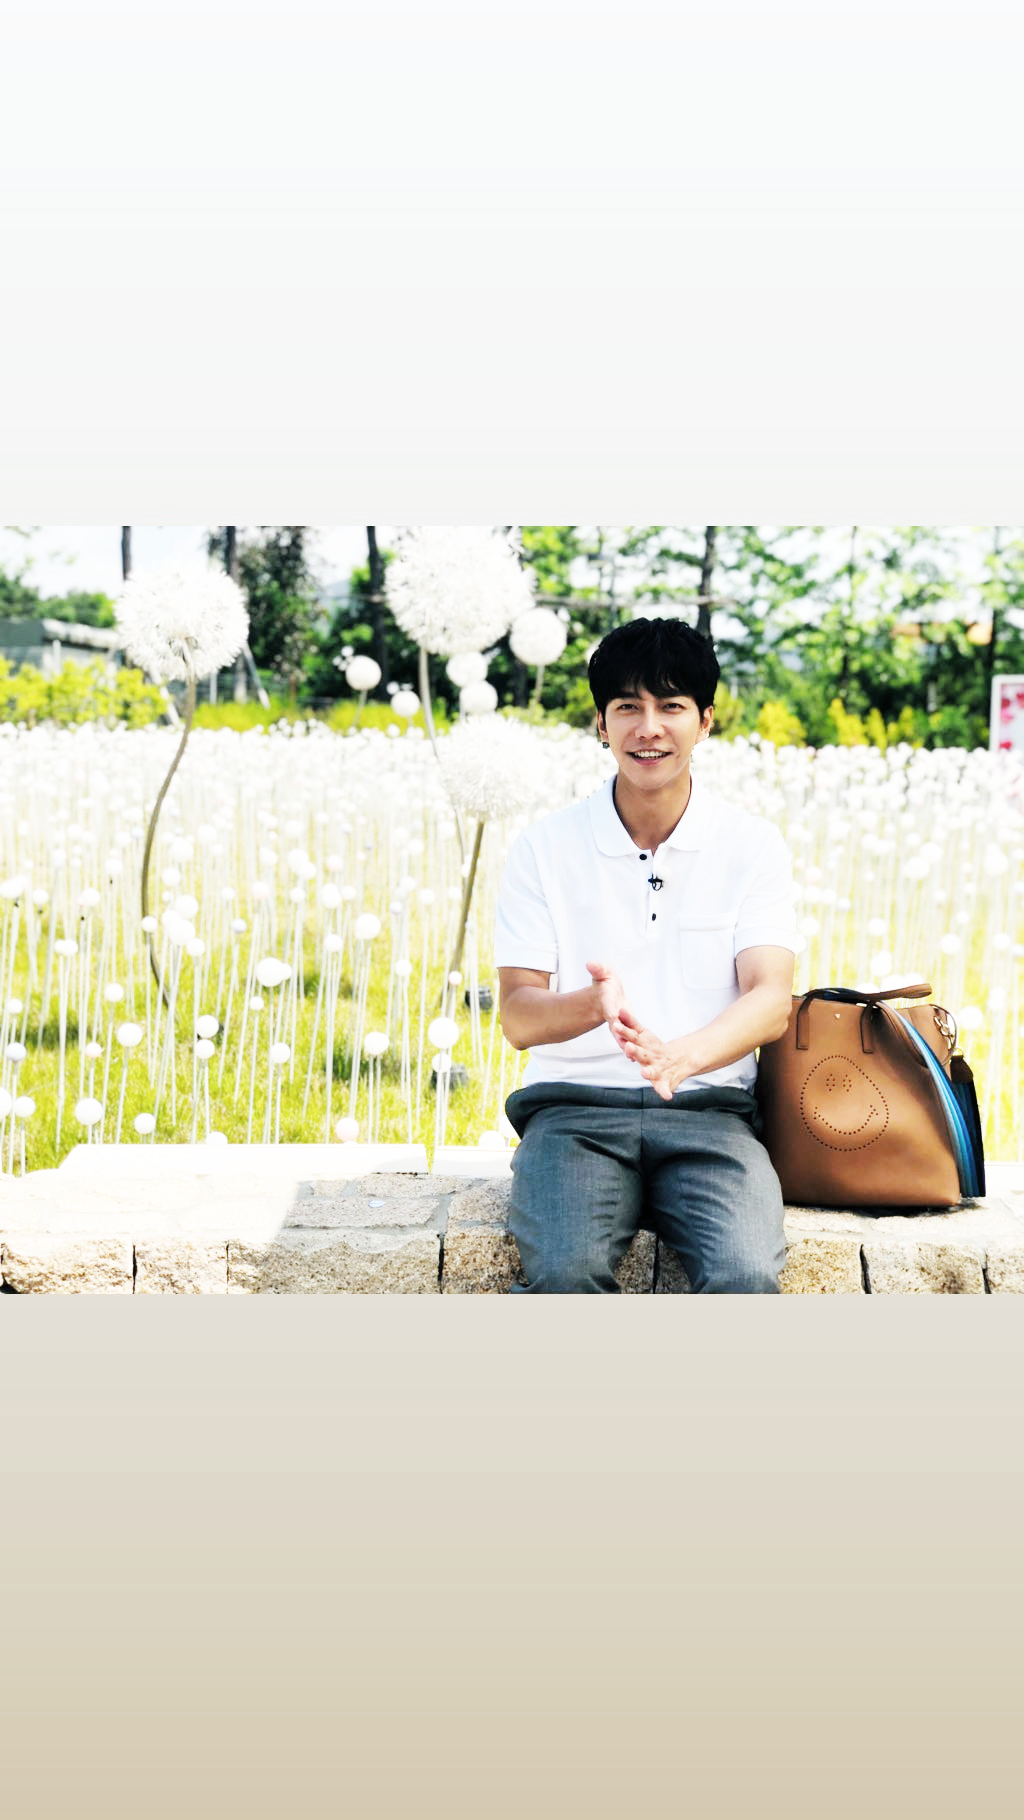 leeseunggi-official-66140668-11473734787